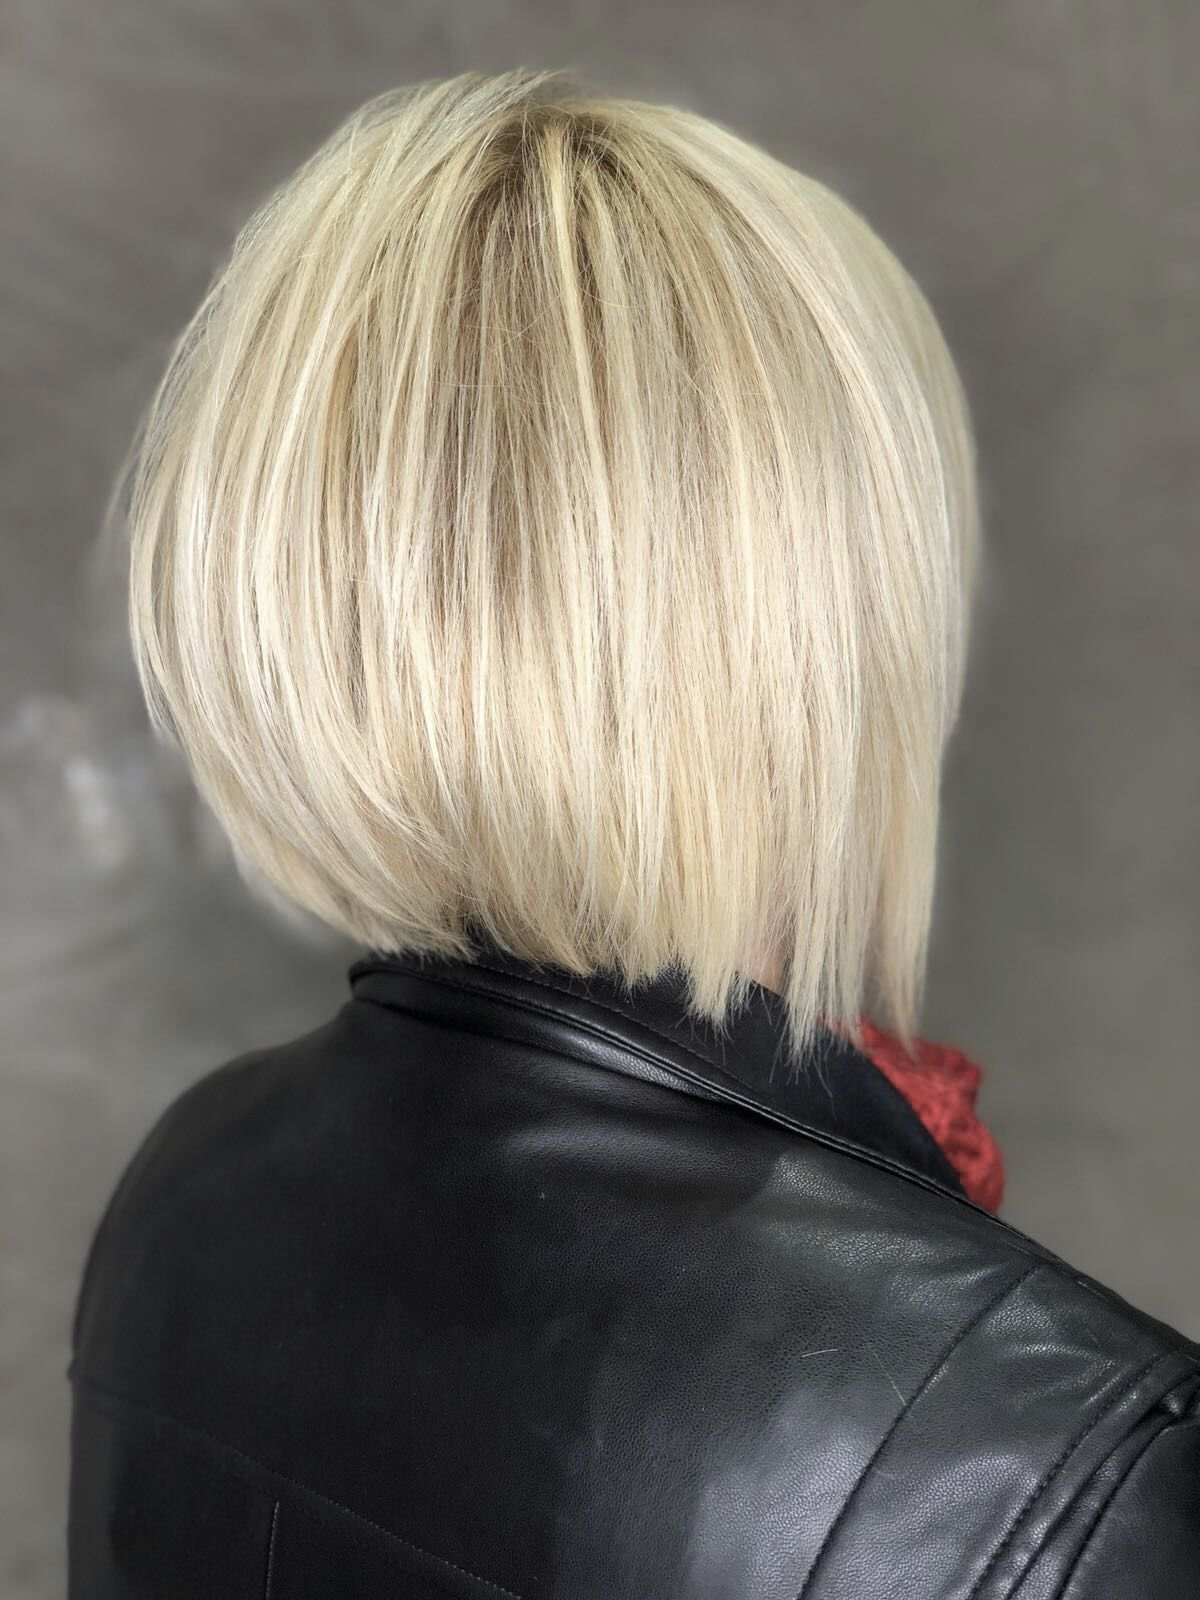 Haircuts Hairstyles Cut Cuts N Color In 2019 Layered Hair Hair Cuts Short